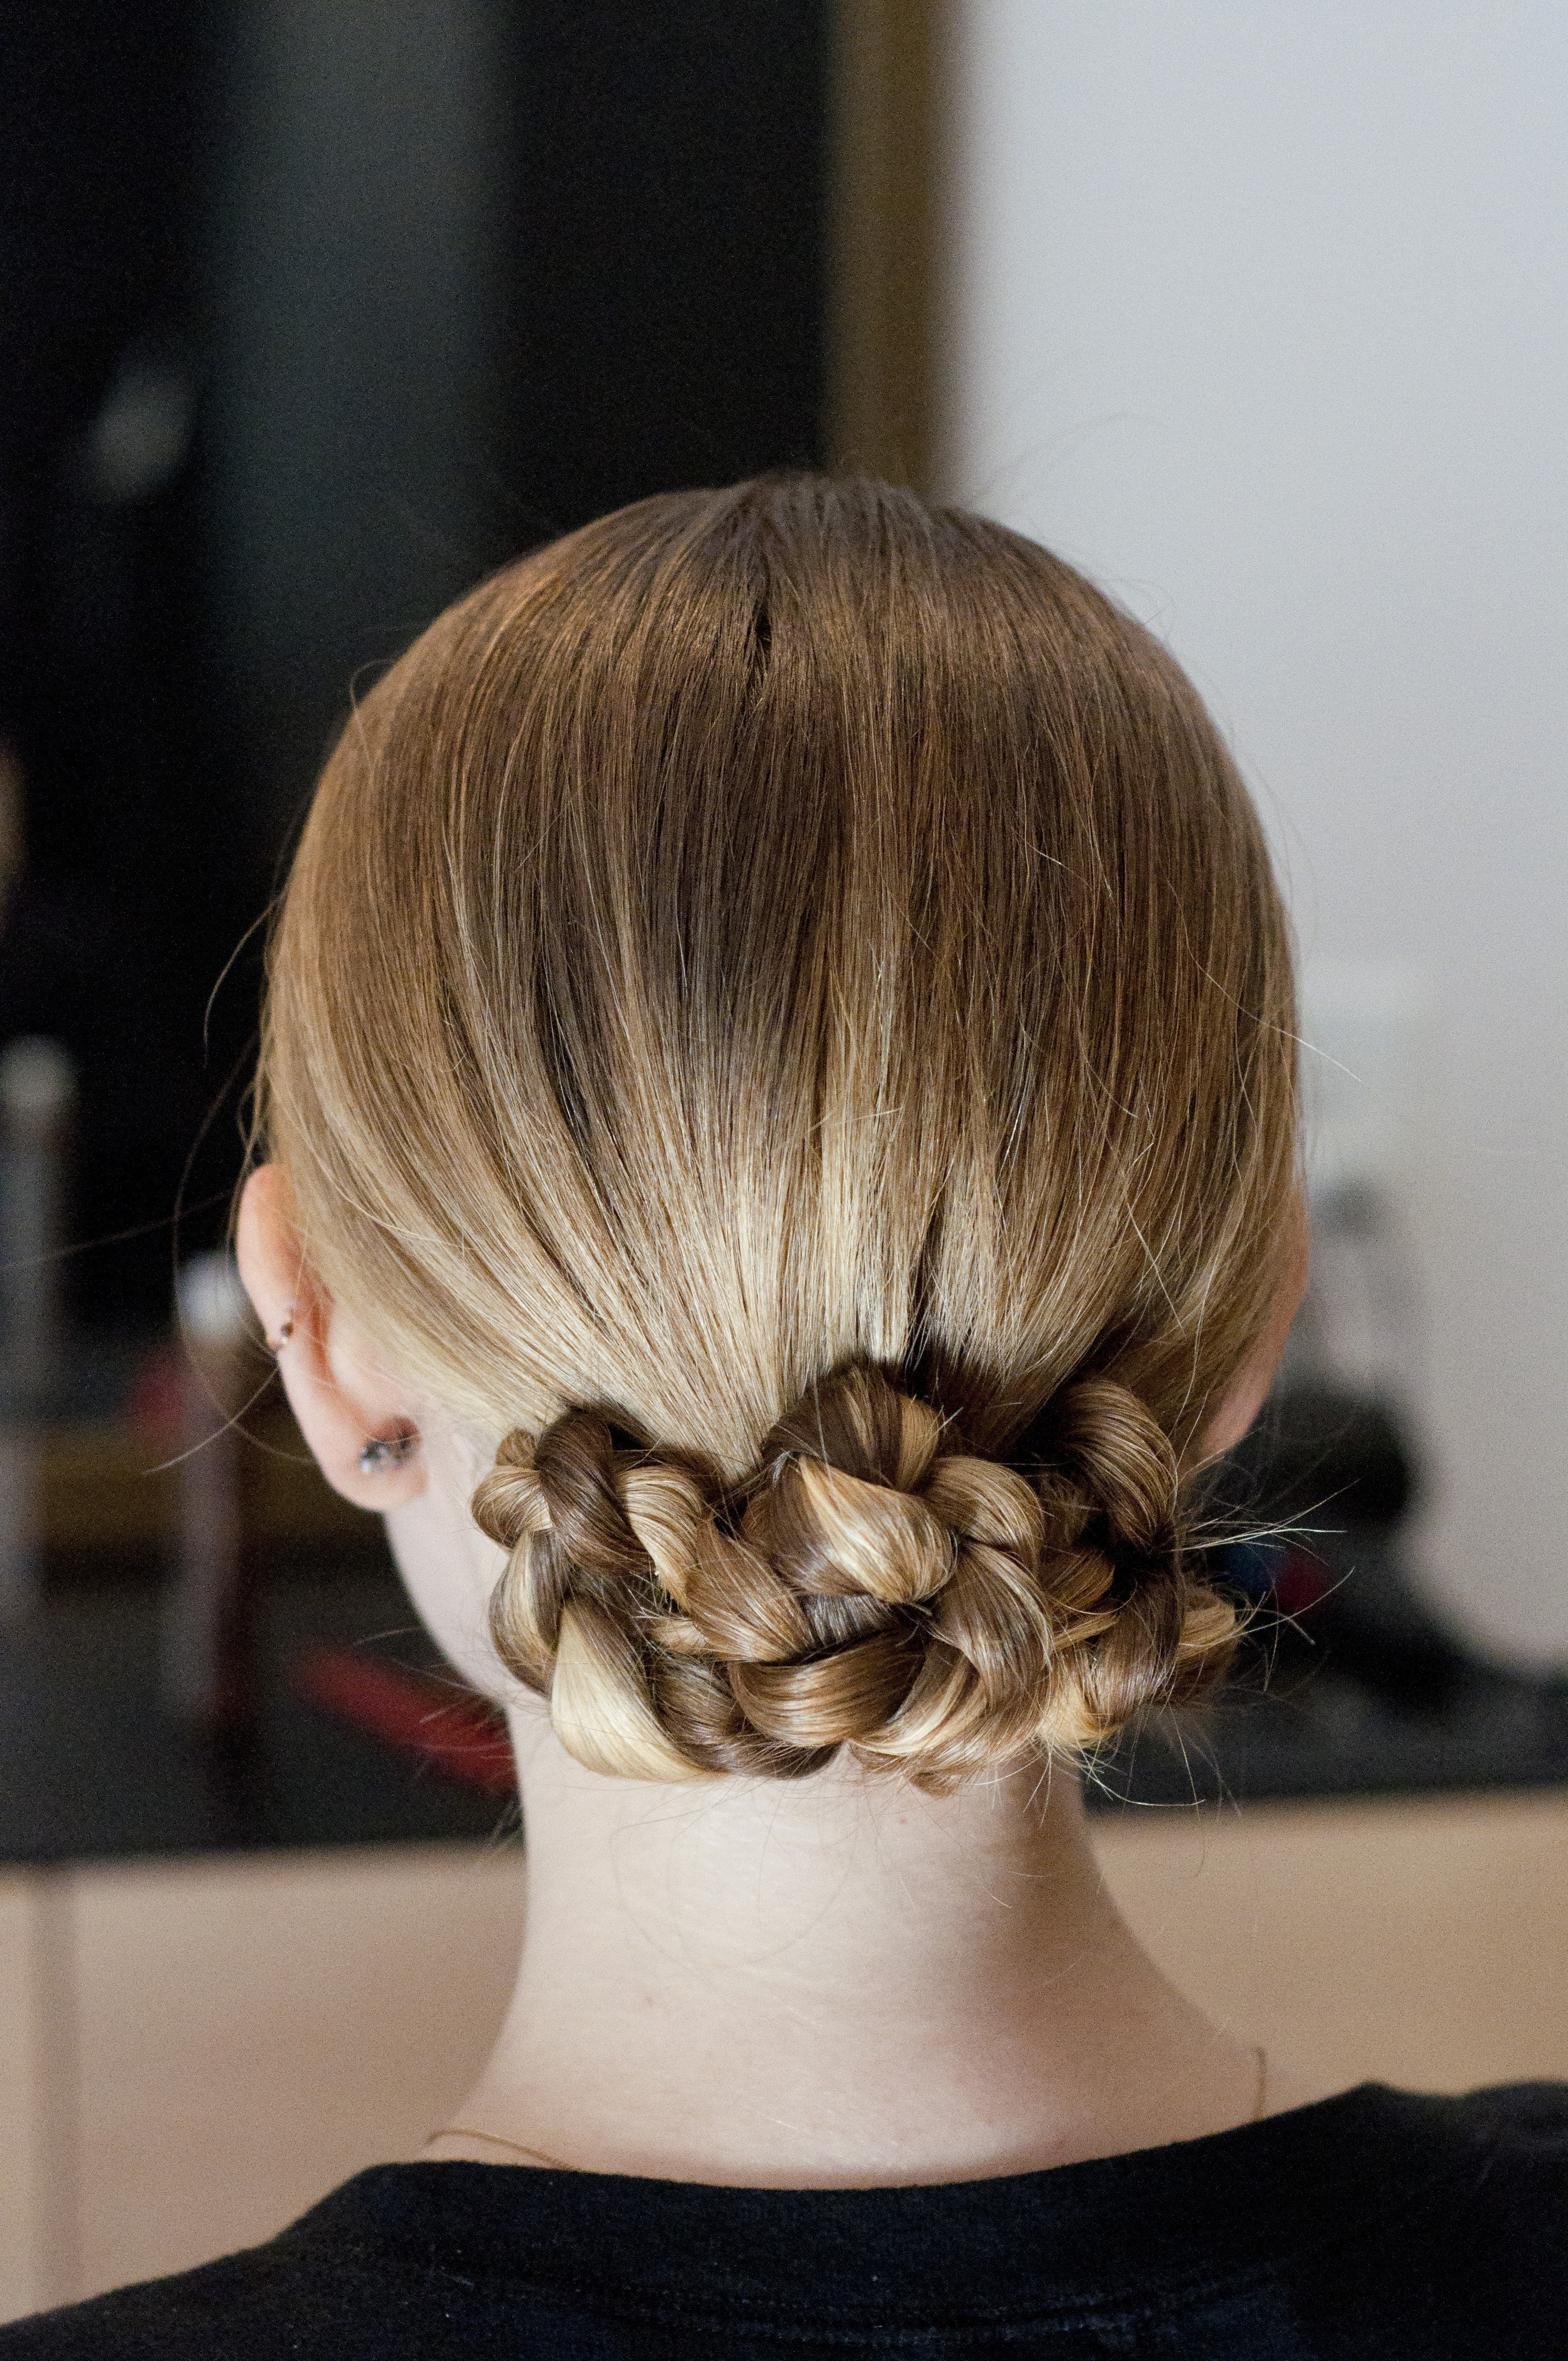 No-Heat Holiday Party 'Do: The Super Sleek Twisted Bun